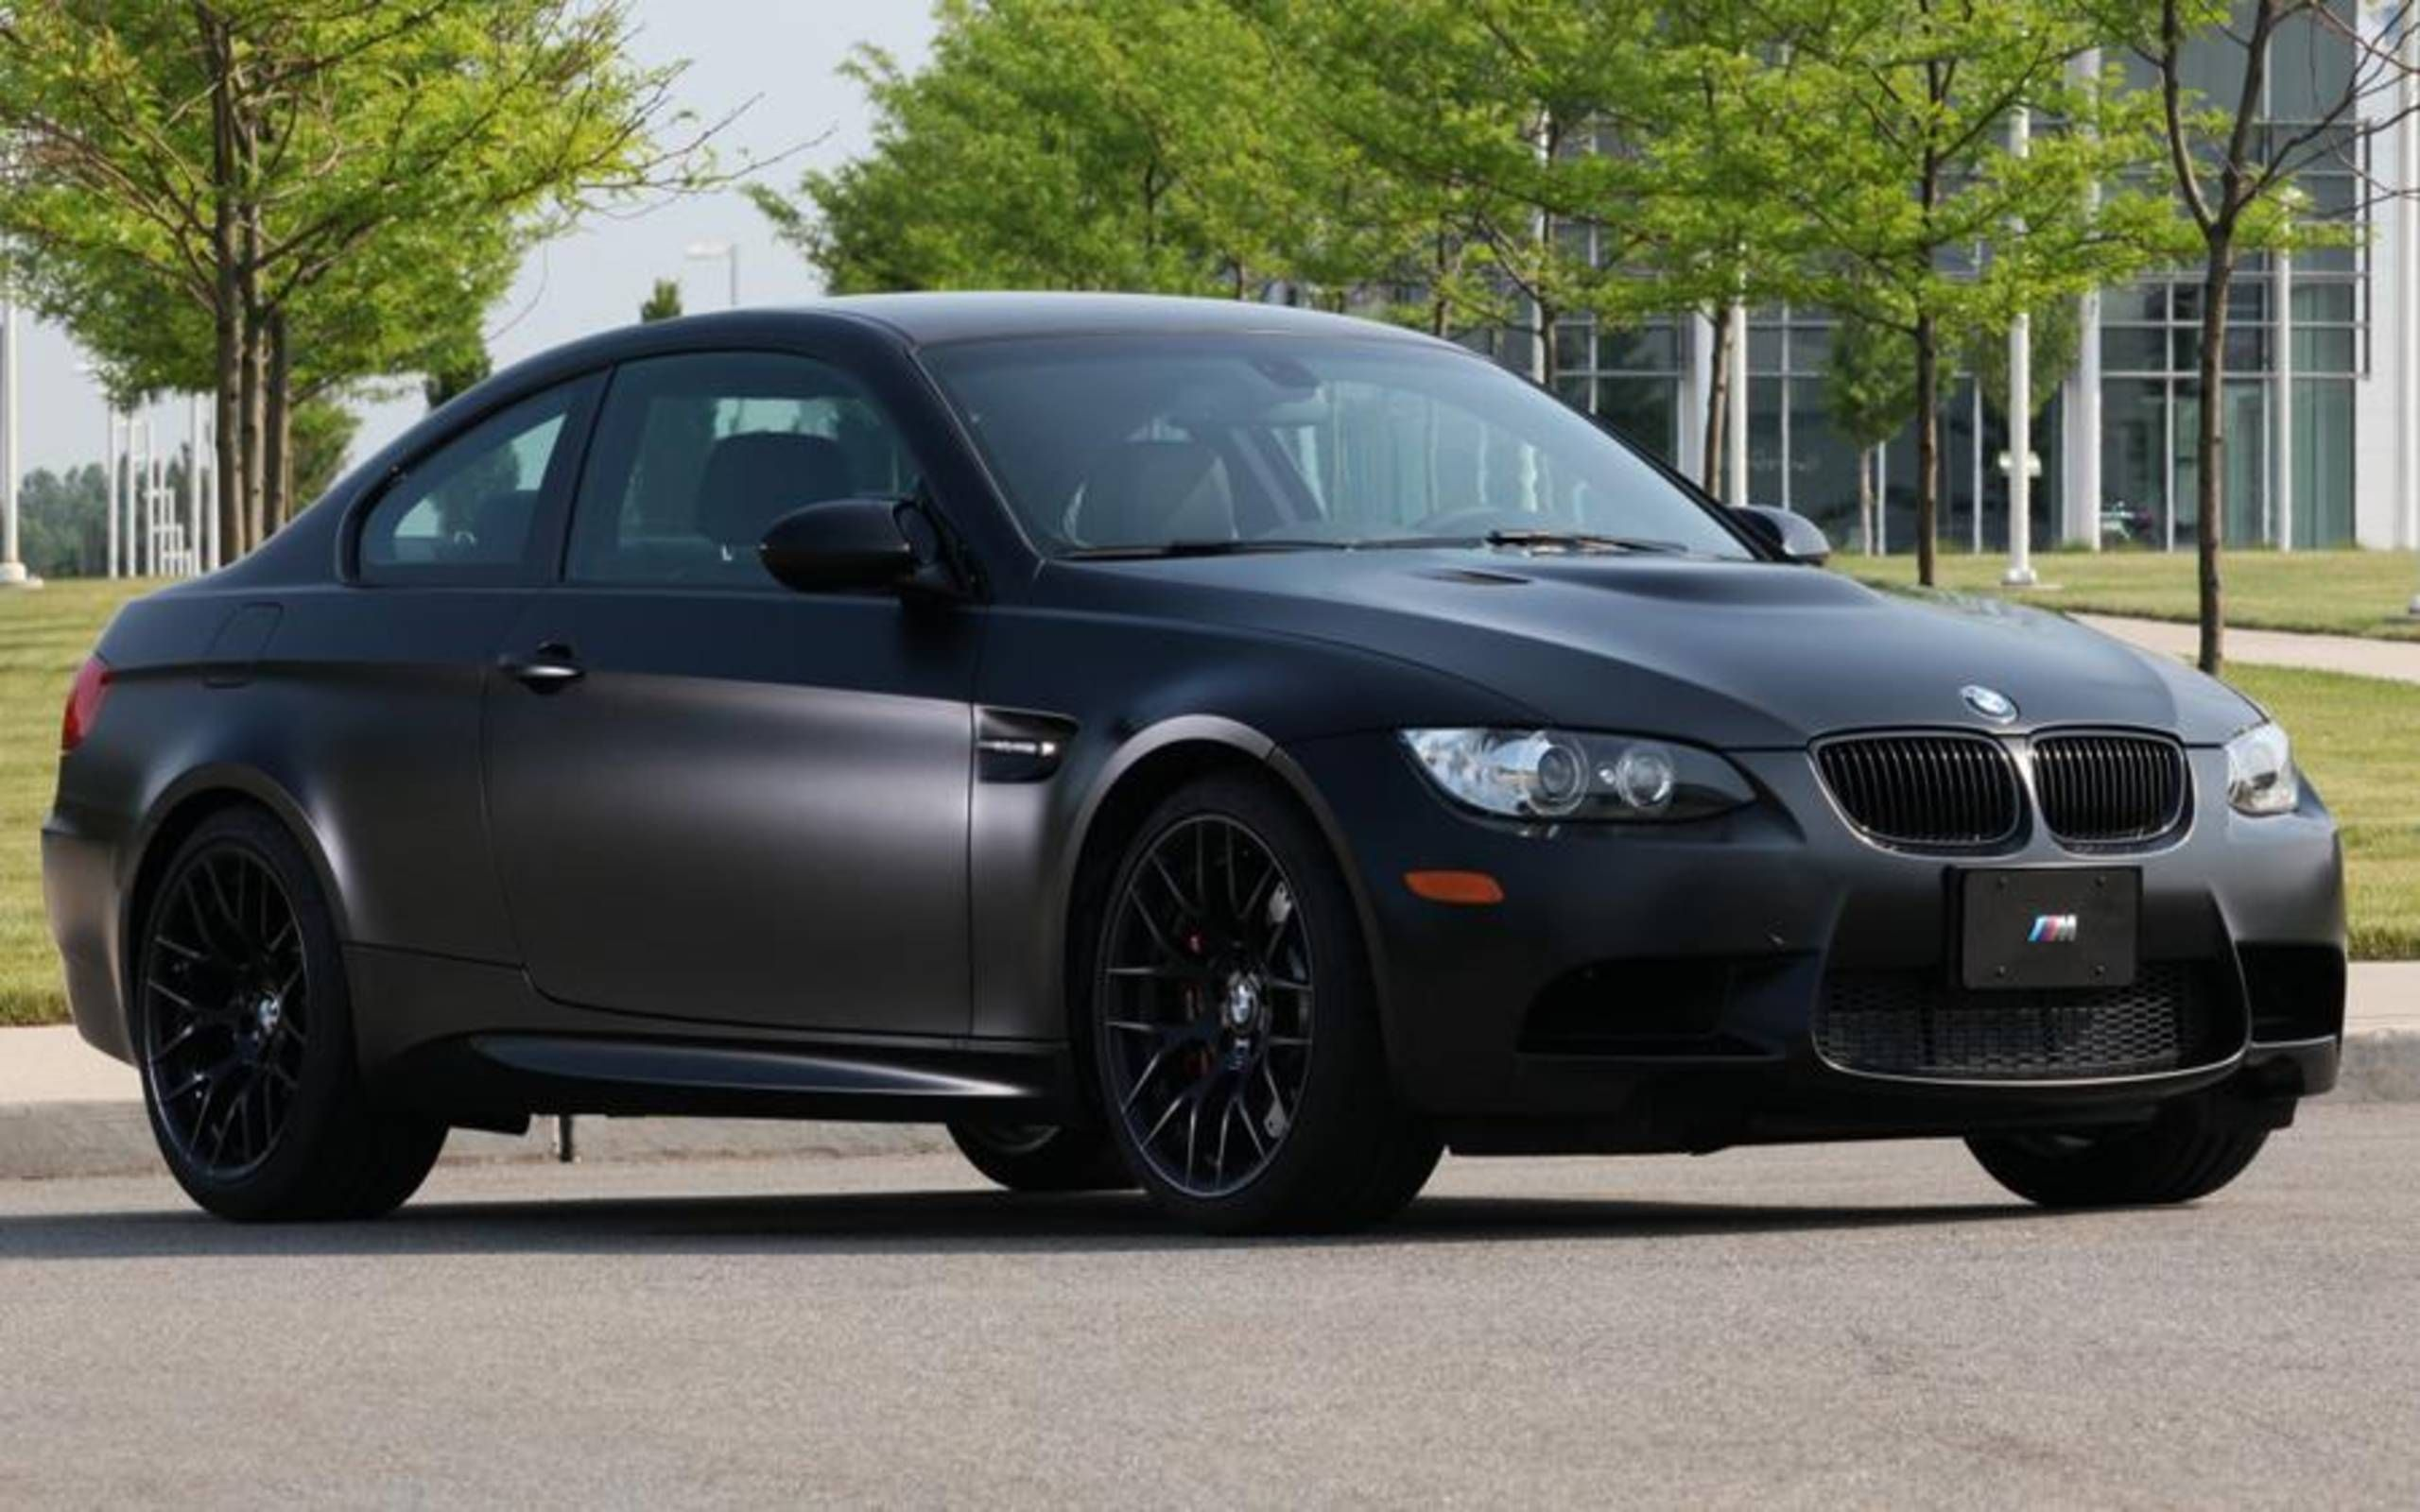 Bmw To Sell 19 Frozen Black Edition M3s In The U S